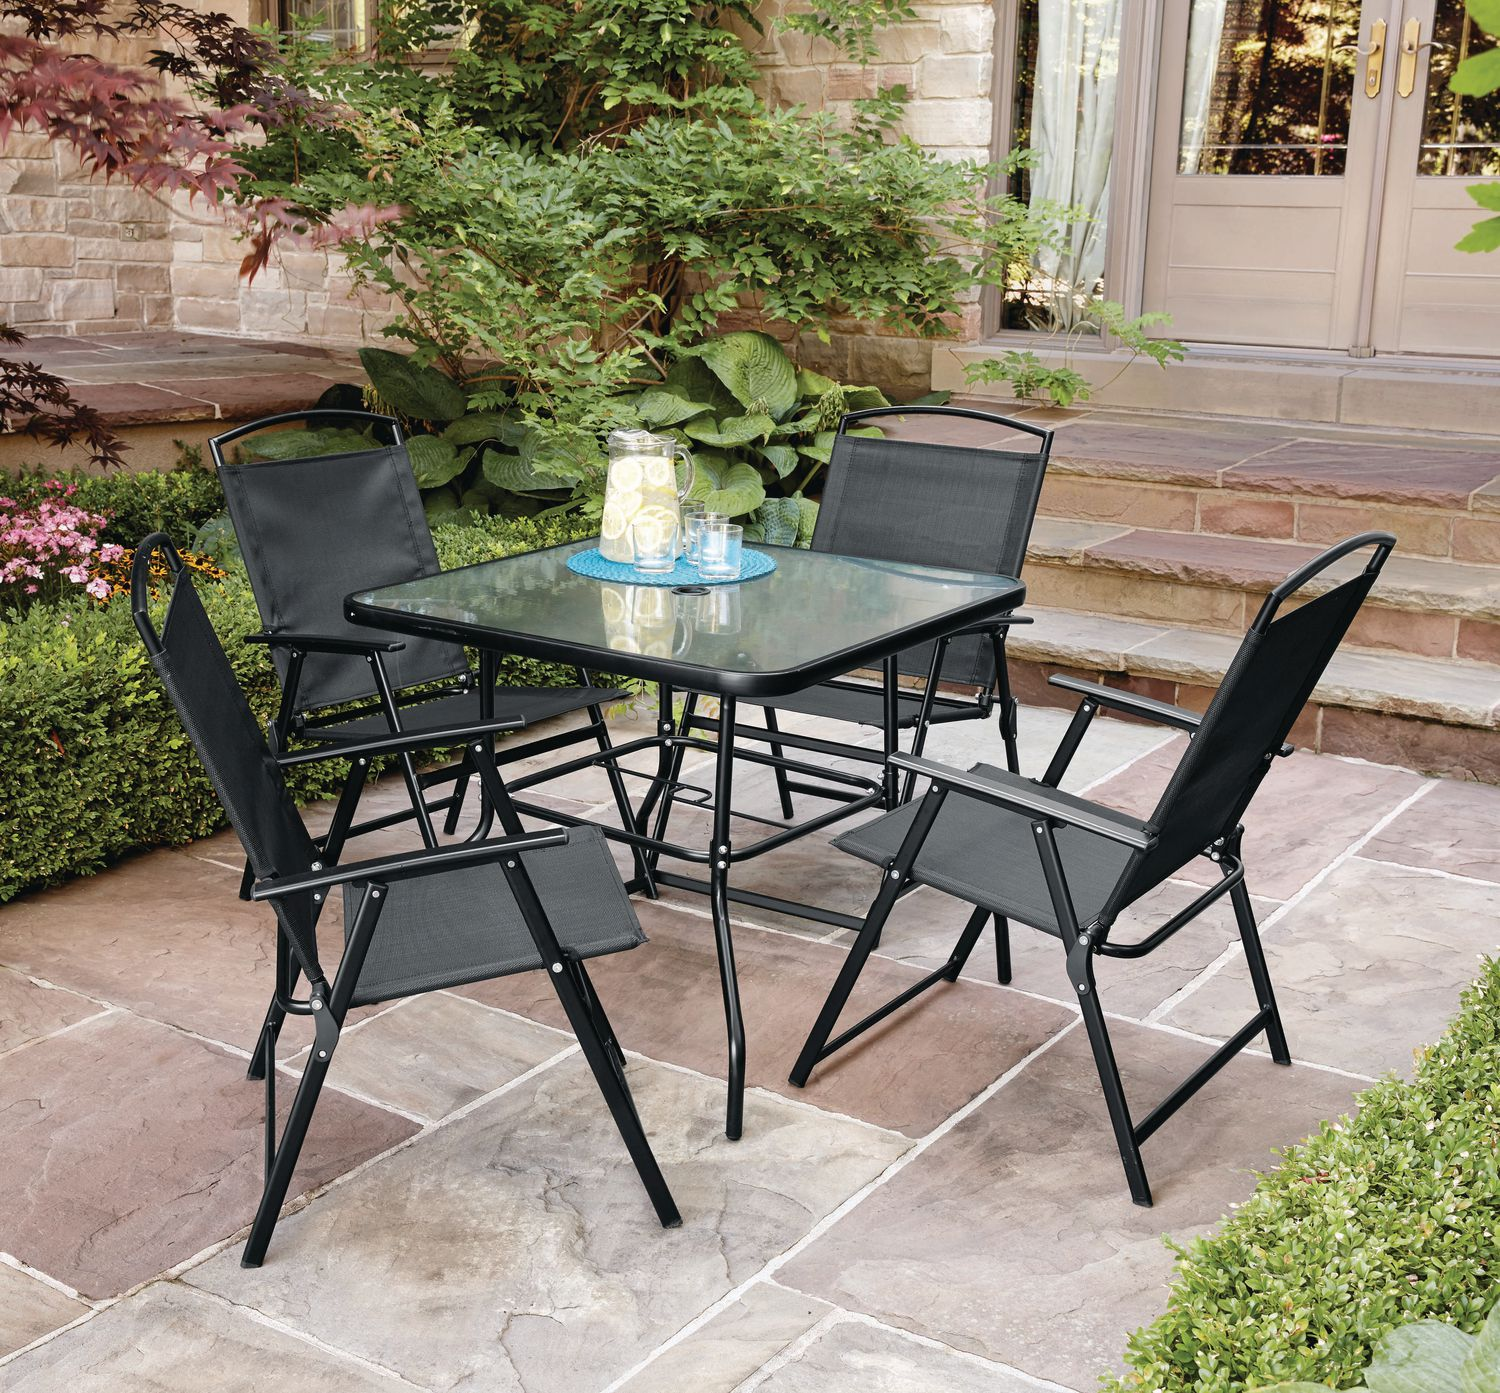 100 discount patio furniture london ontario outdoor for Outdoor furniture london